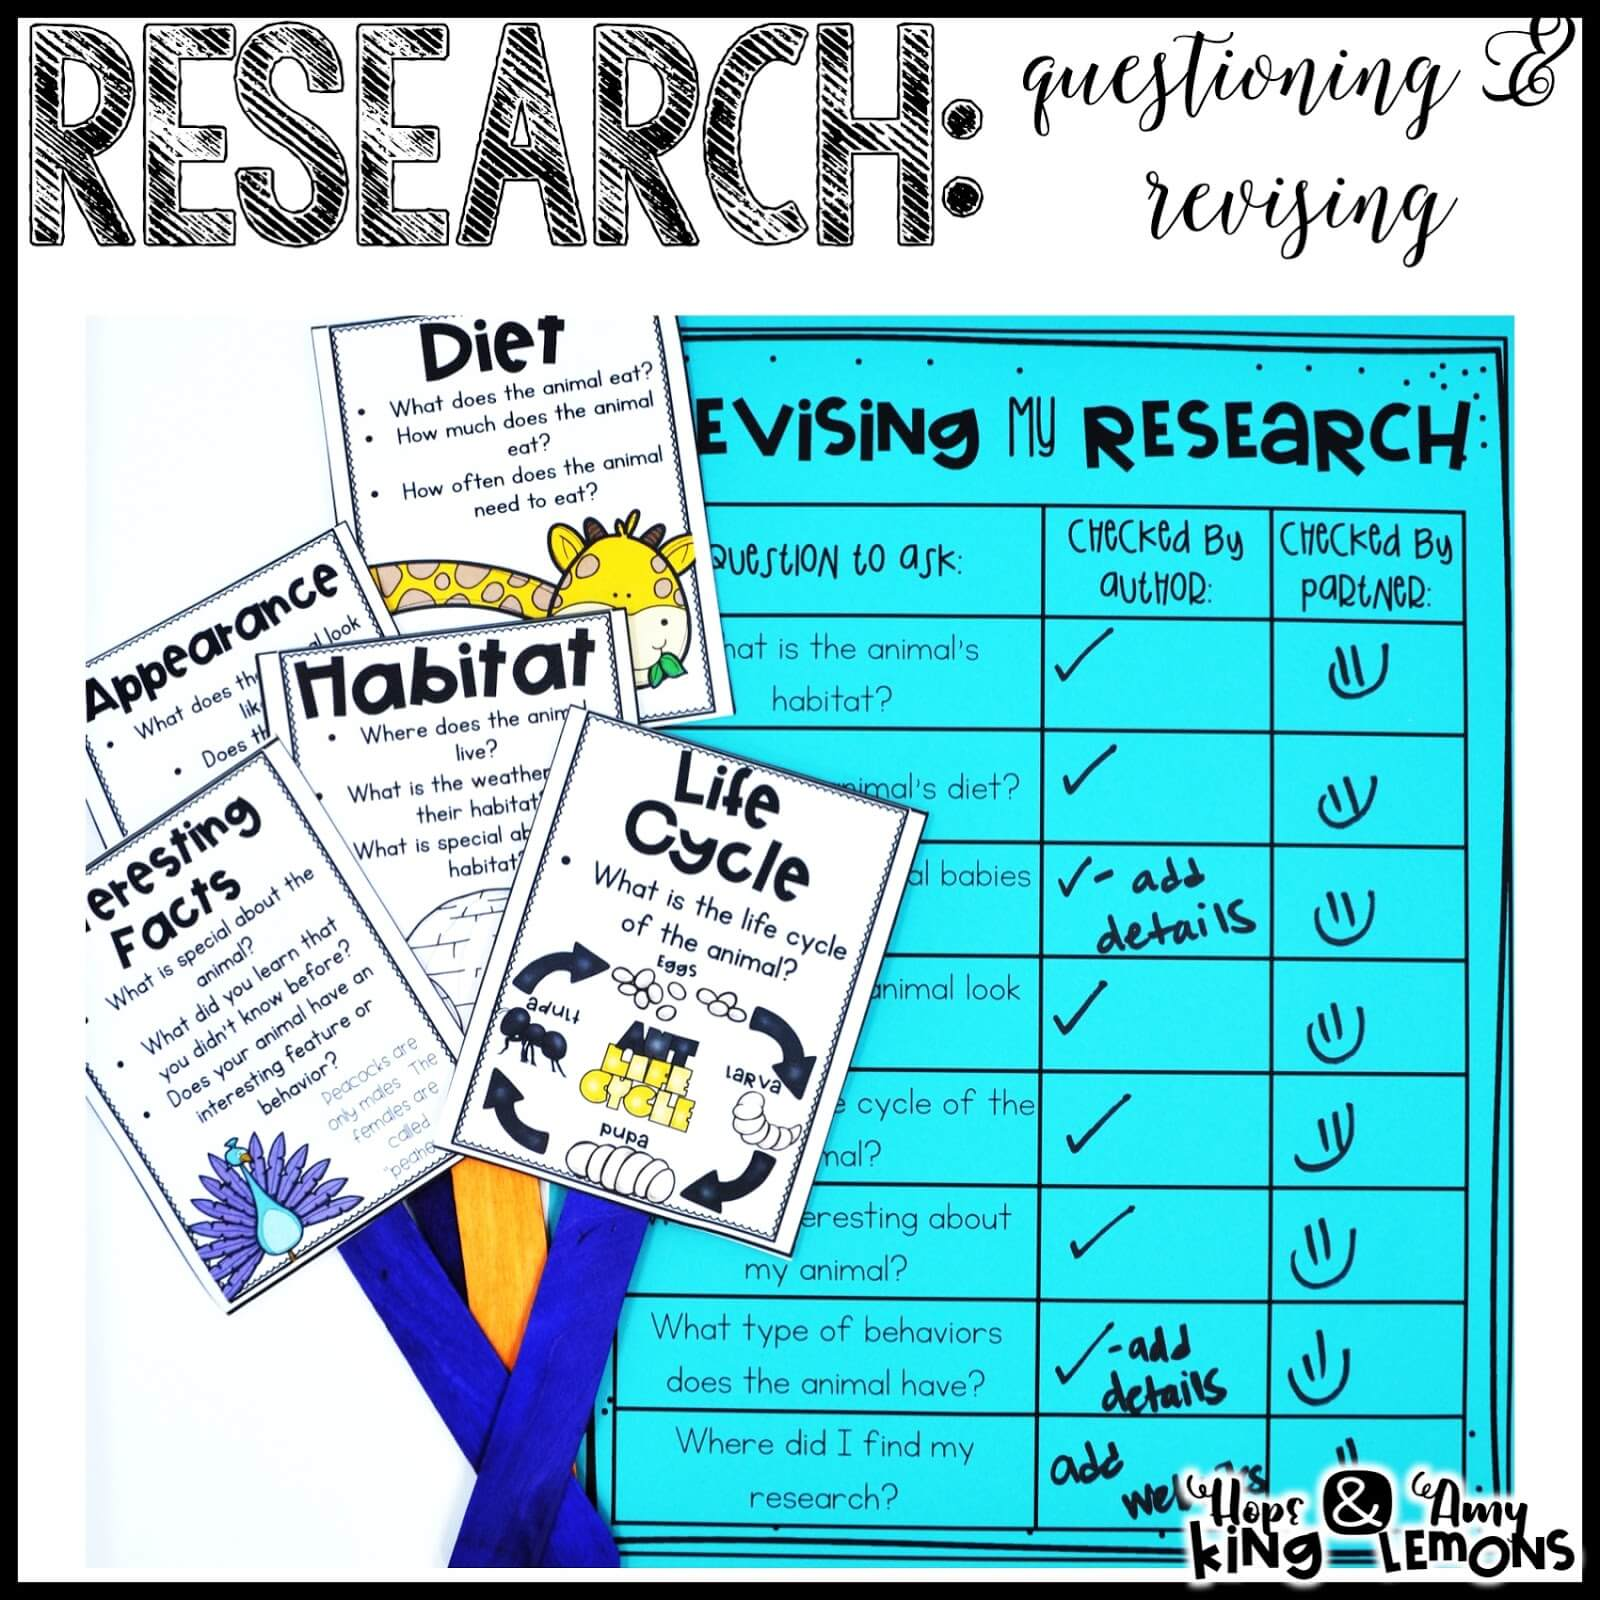 Buy research papers nj. The Best Essay Writing Service is Right Here ...